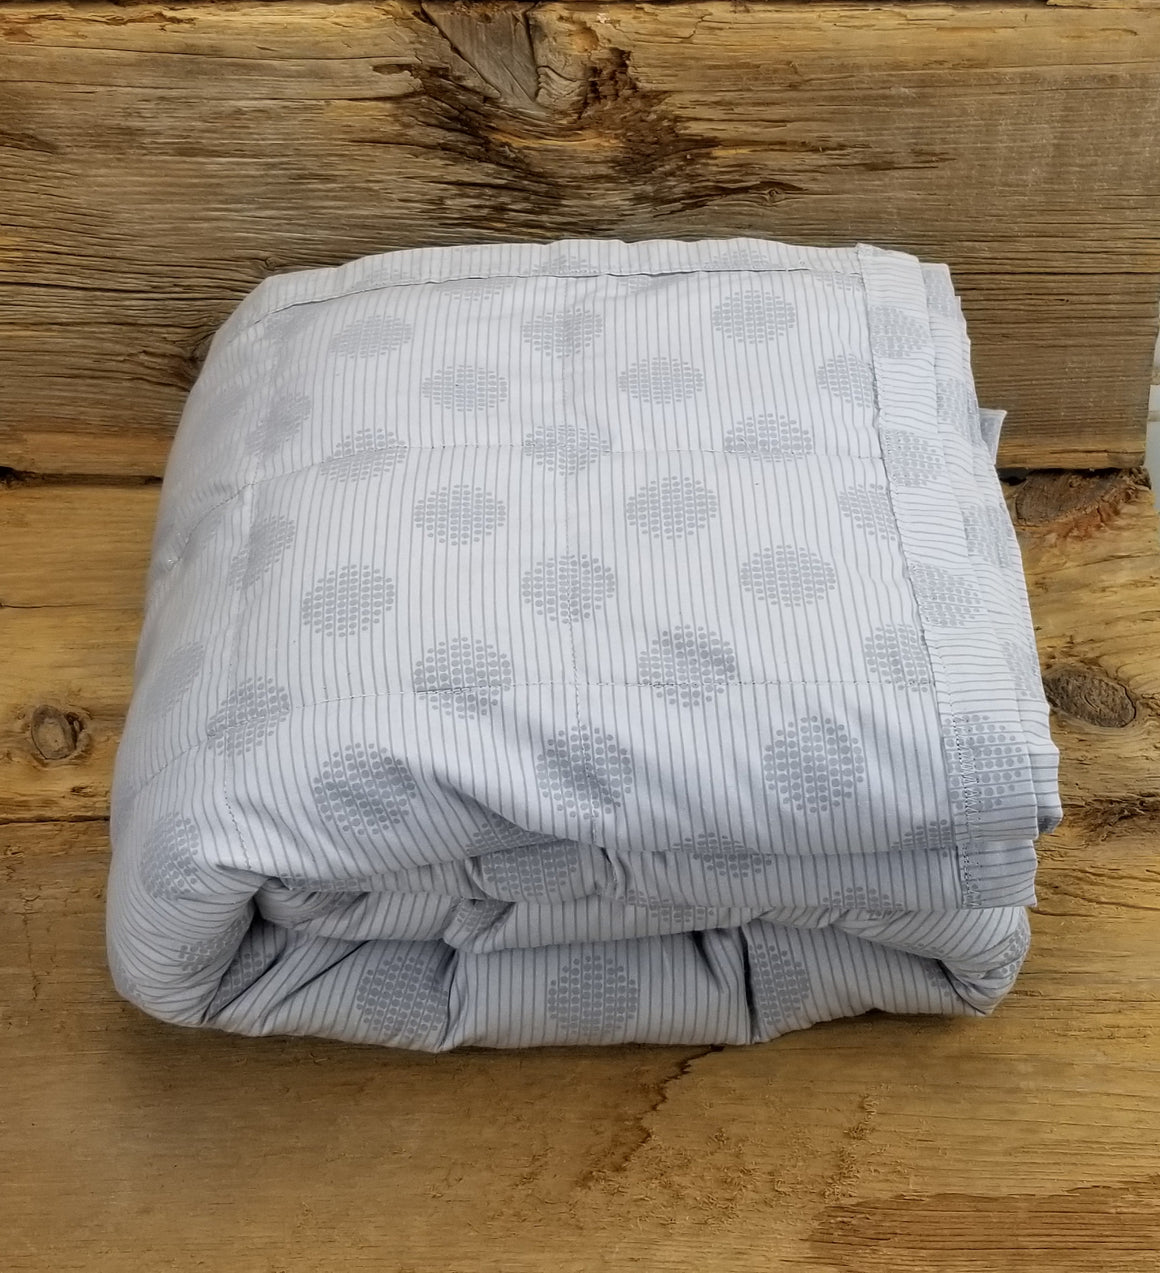 Ready to ship 17.8lbs Double/Full Weighted Blanket Light Grey Single Color